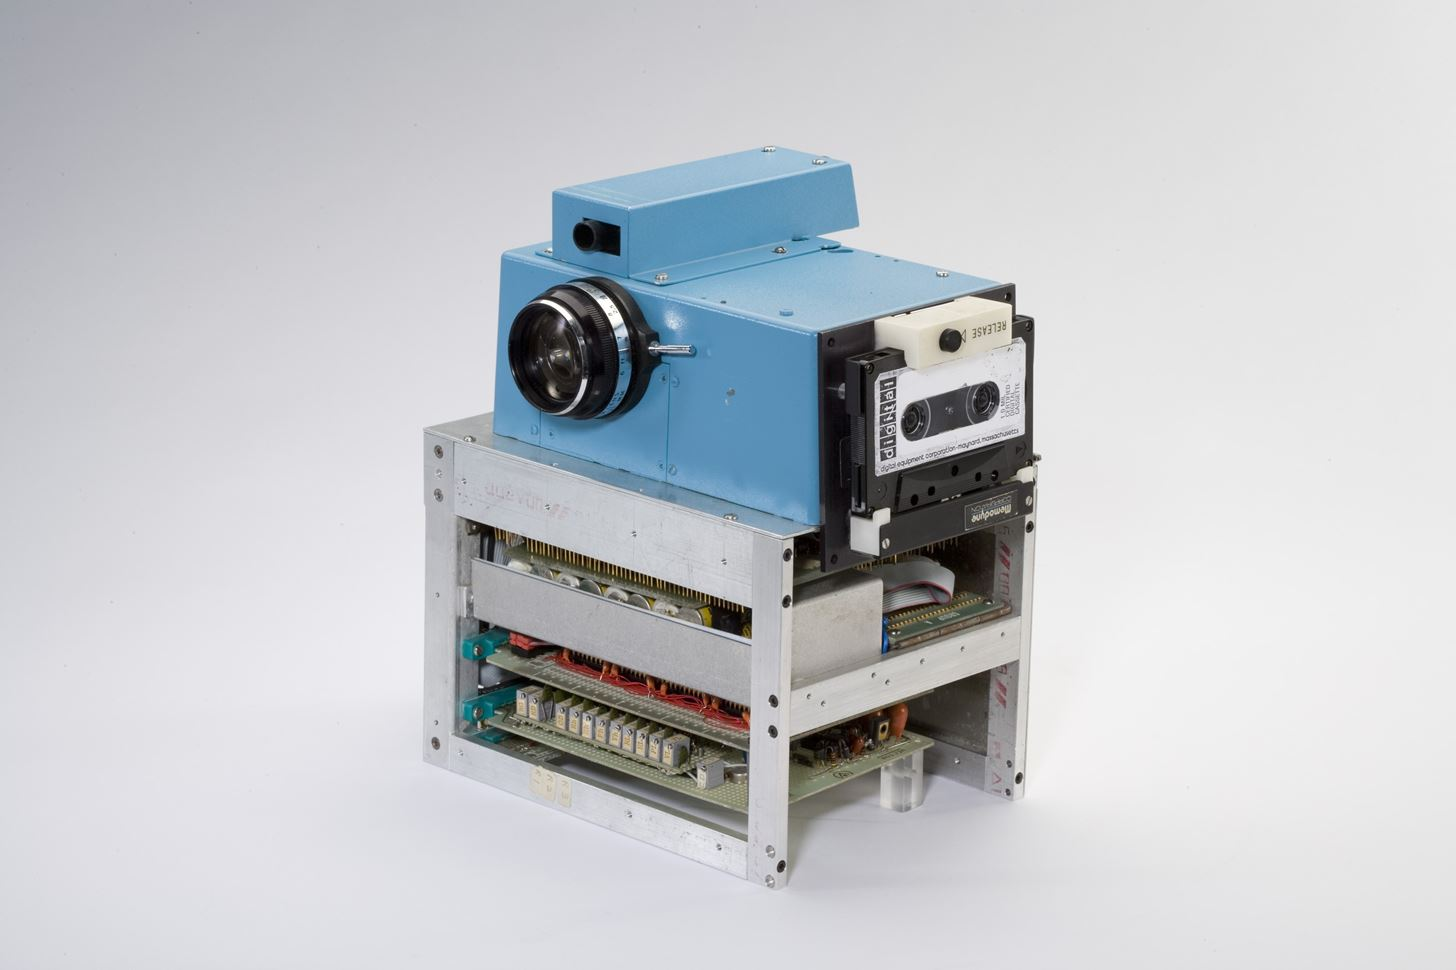 The World's First Digital Camera